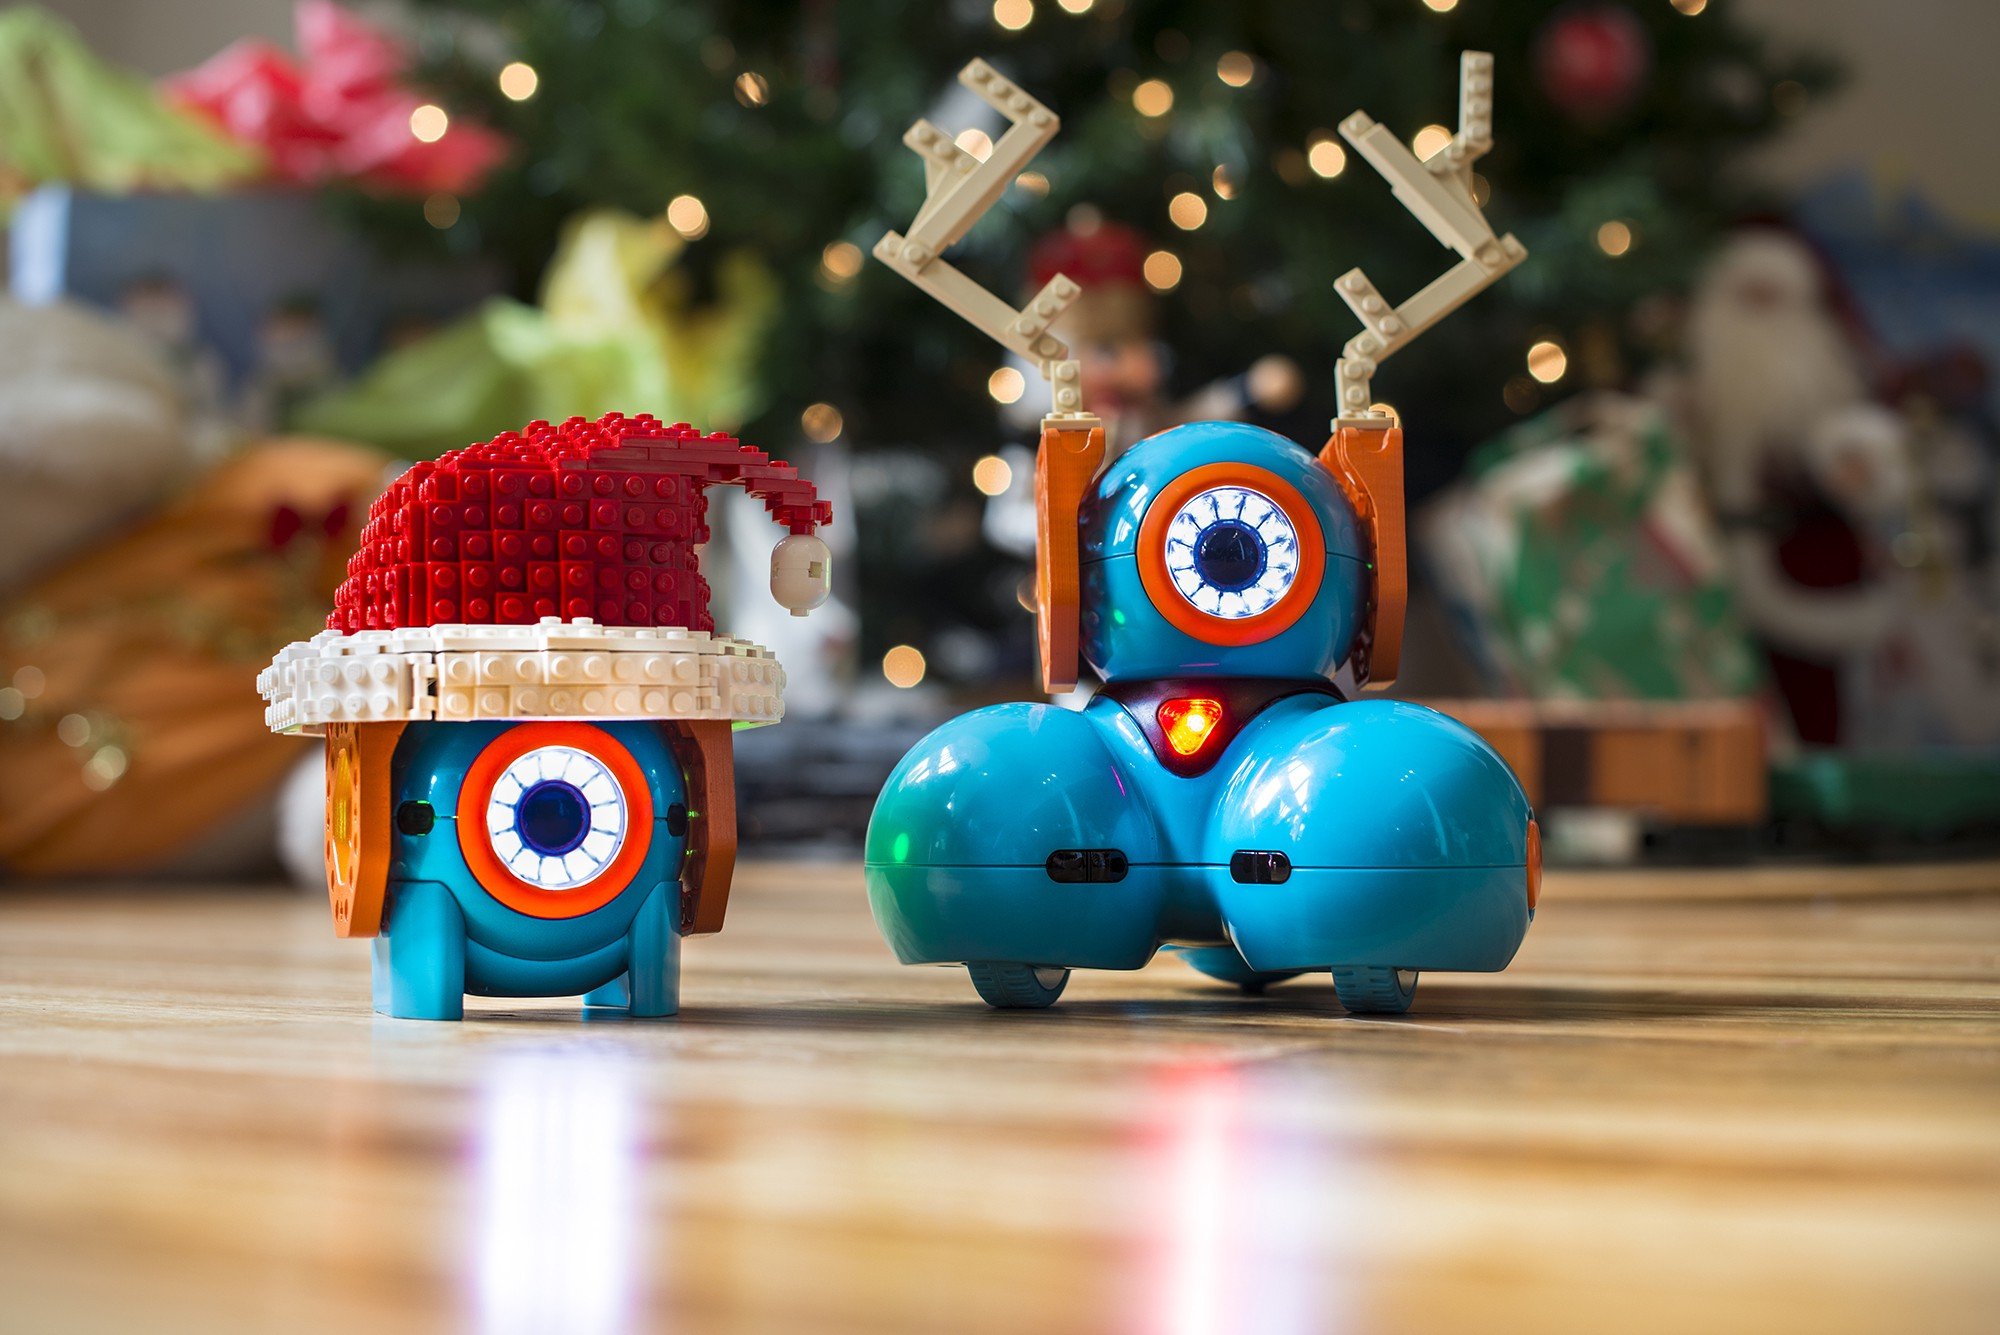 Christmas Robot Toys : These toy robots want to program your kid s mind backchannel